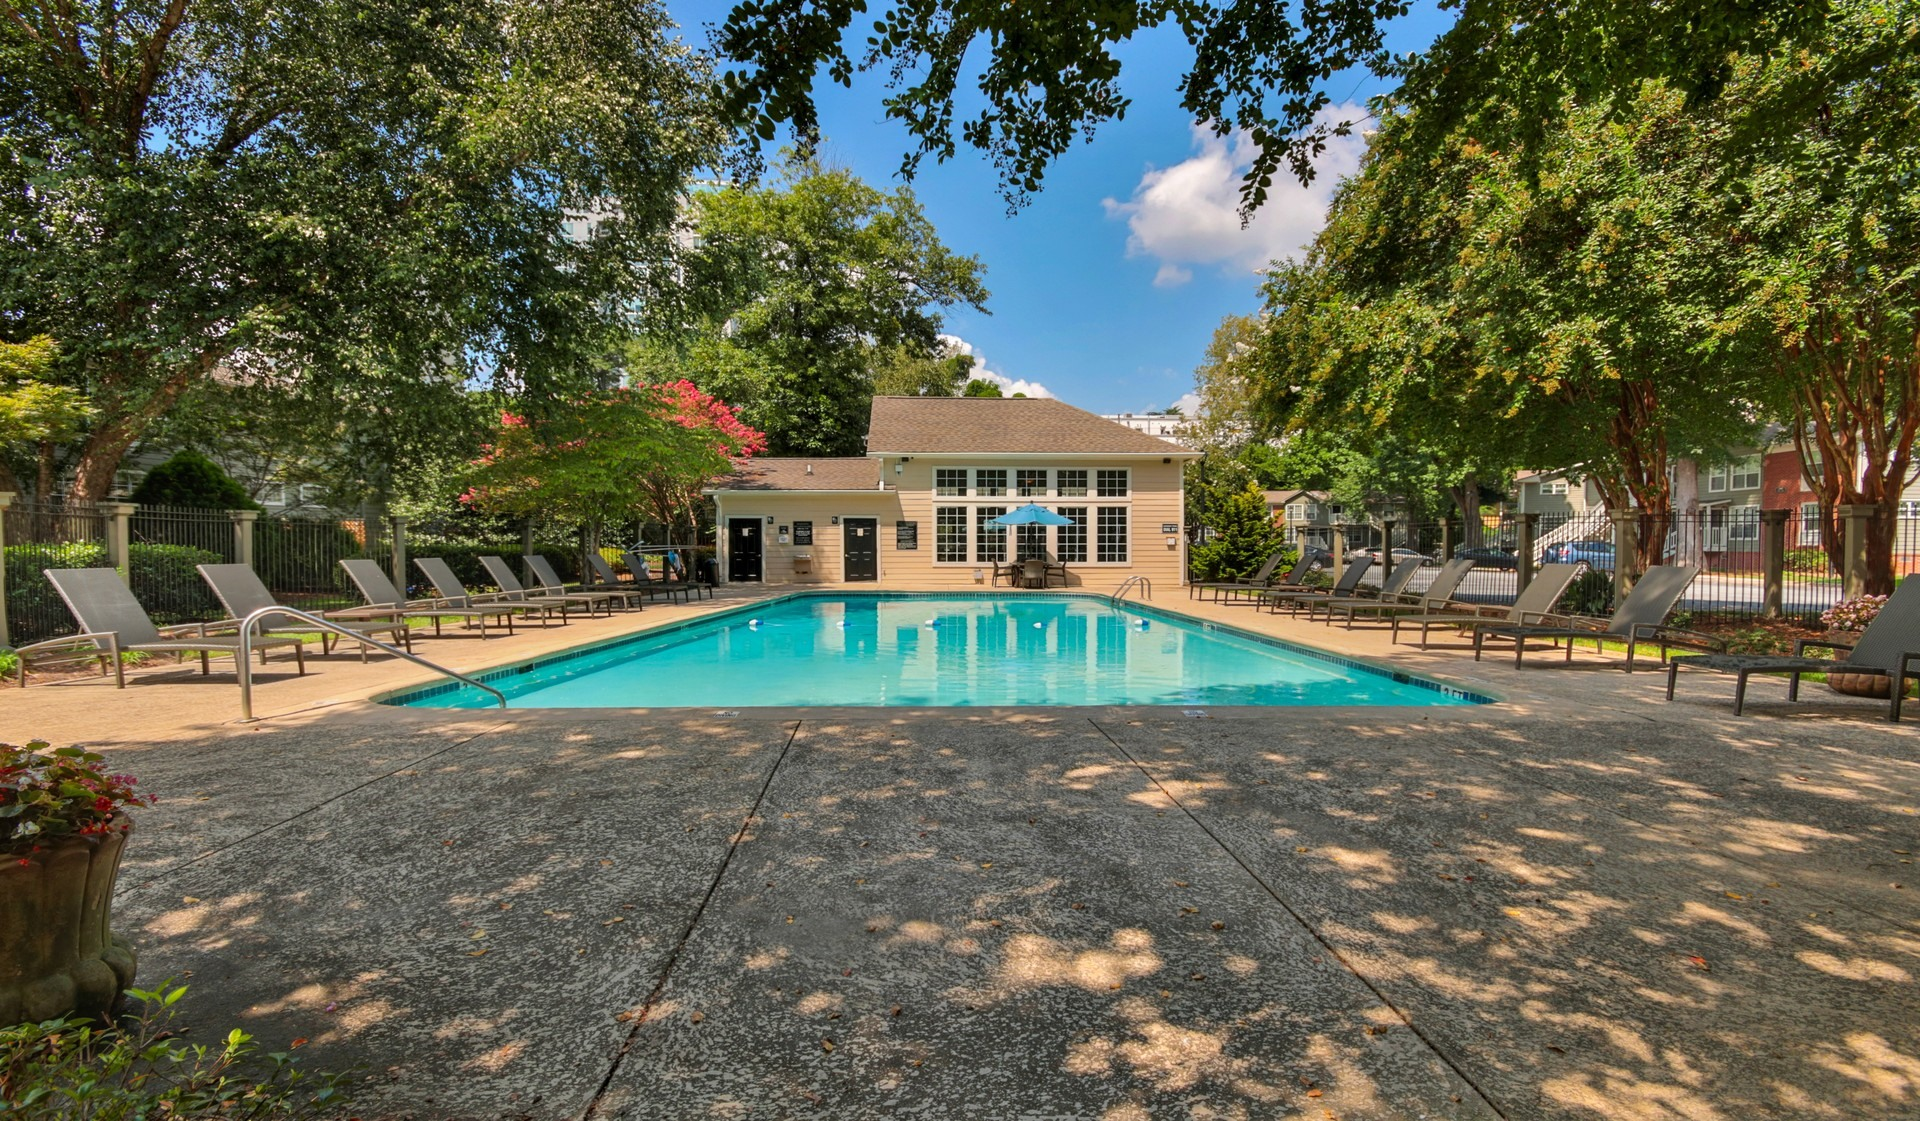 https://www.peachtreeparkapartments.com/content/dam/aimco-properties/039110/1920x1121/amenities/Pool1.jpg